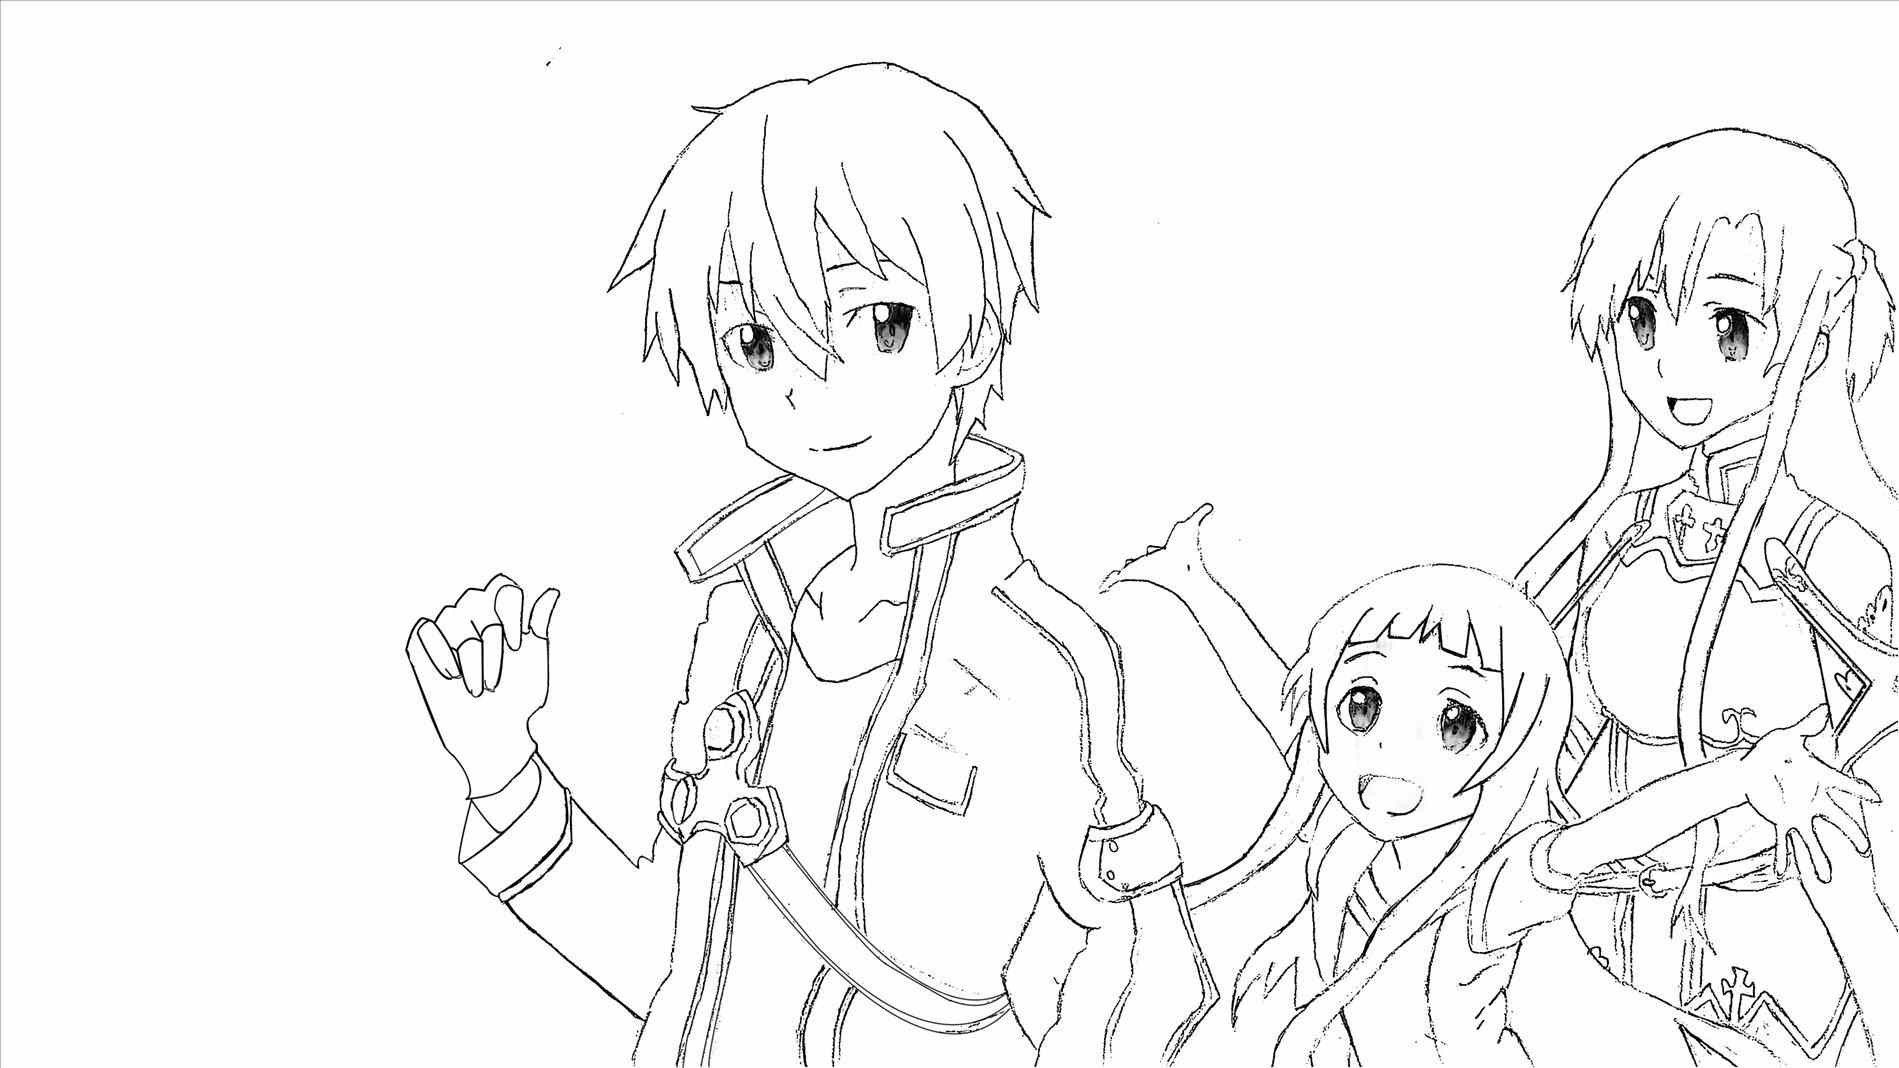 Pioneering Kirito And Asuna Coloring Pages Lavishly Is A Web That Contains With Sword Art Online Coloring Sword Art Online Online Coloring Pages Coloring Pages